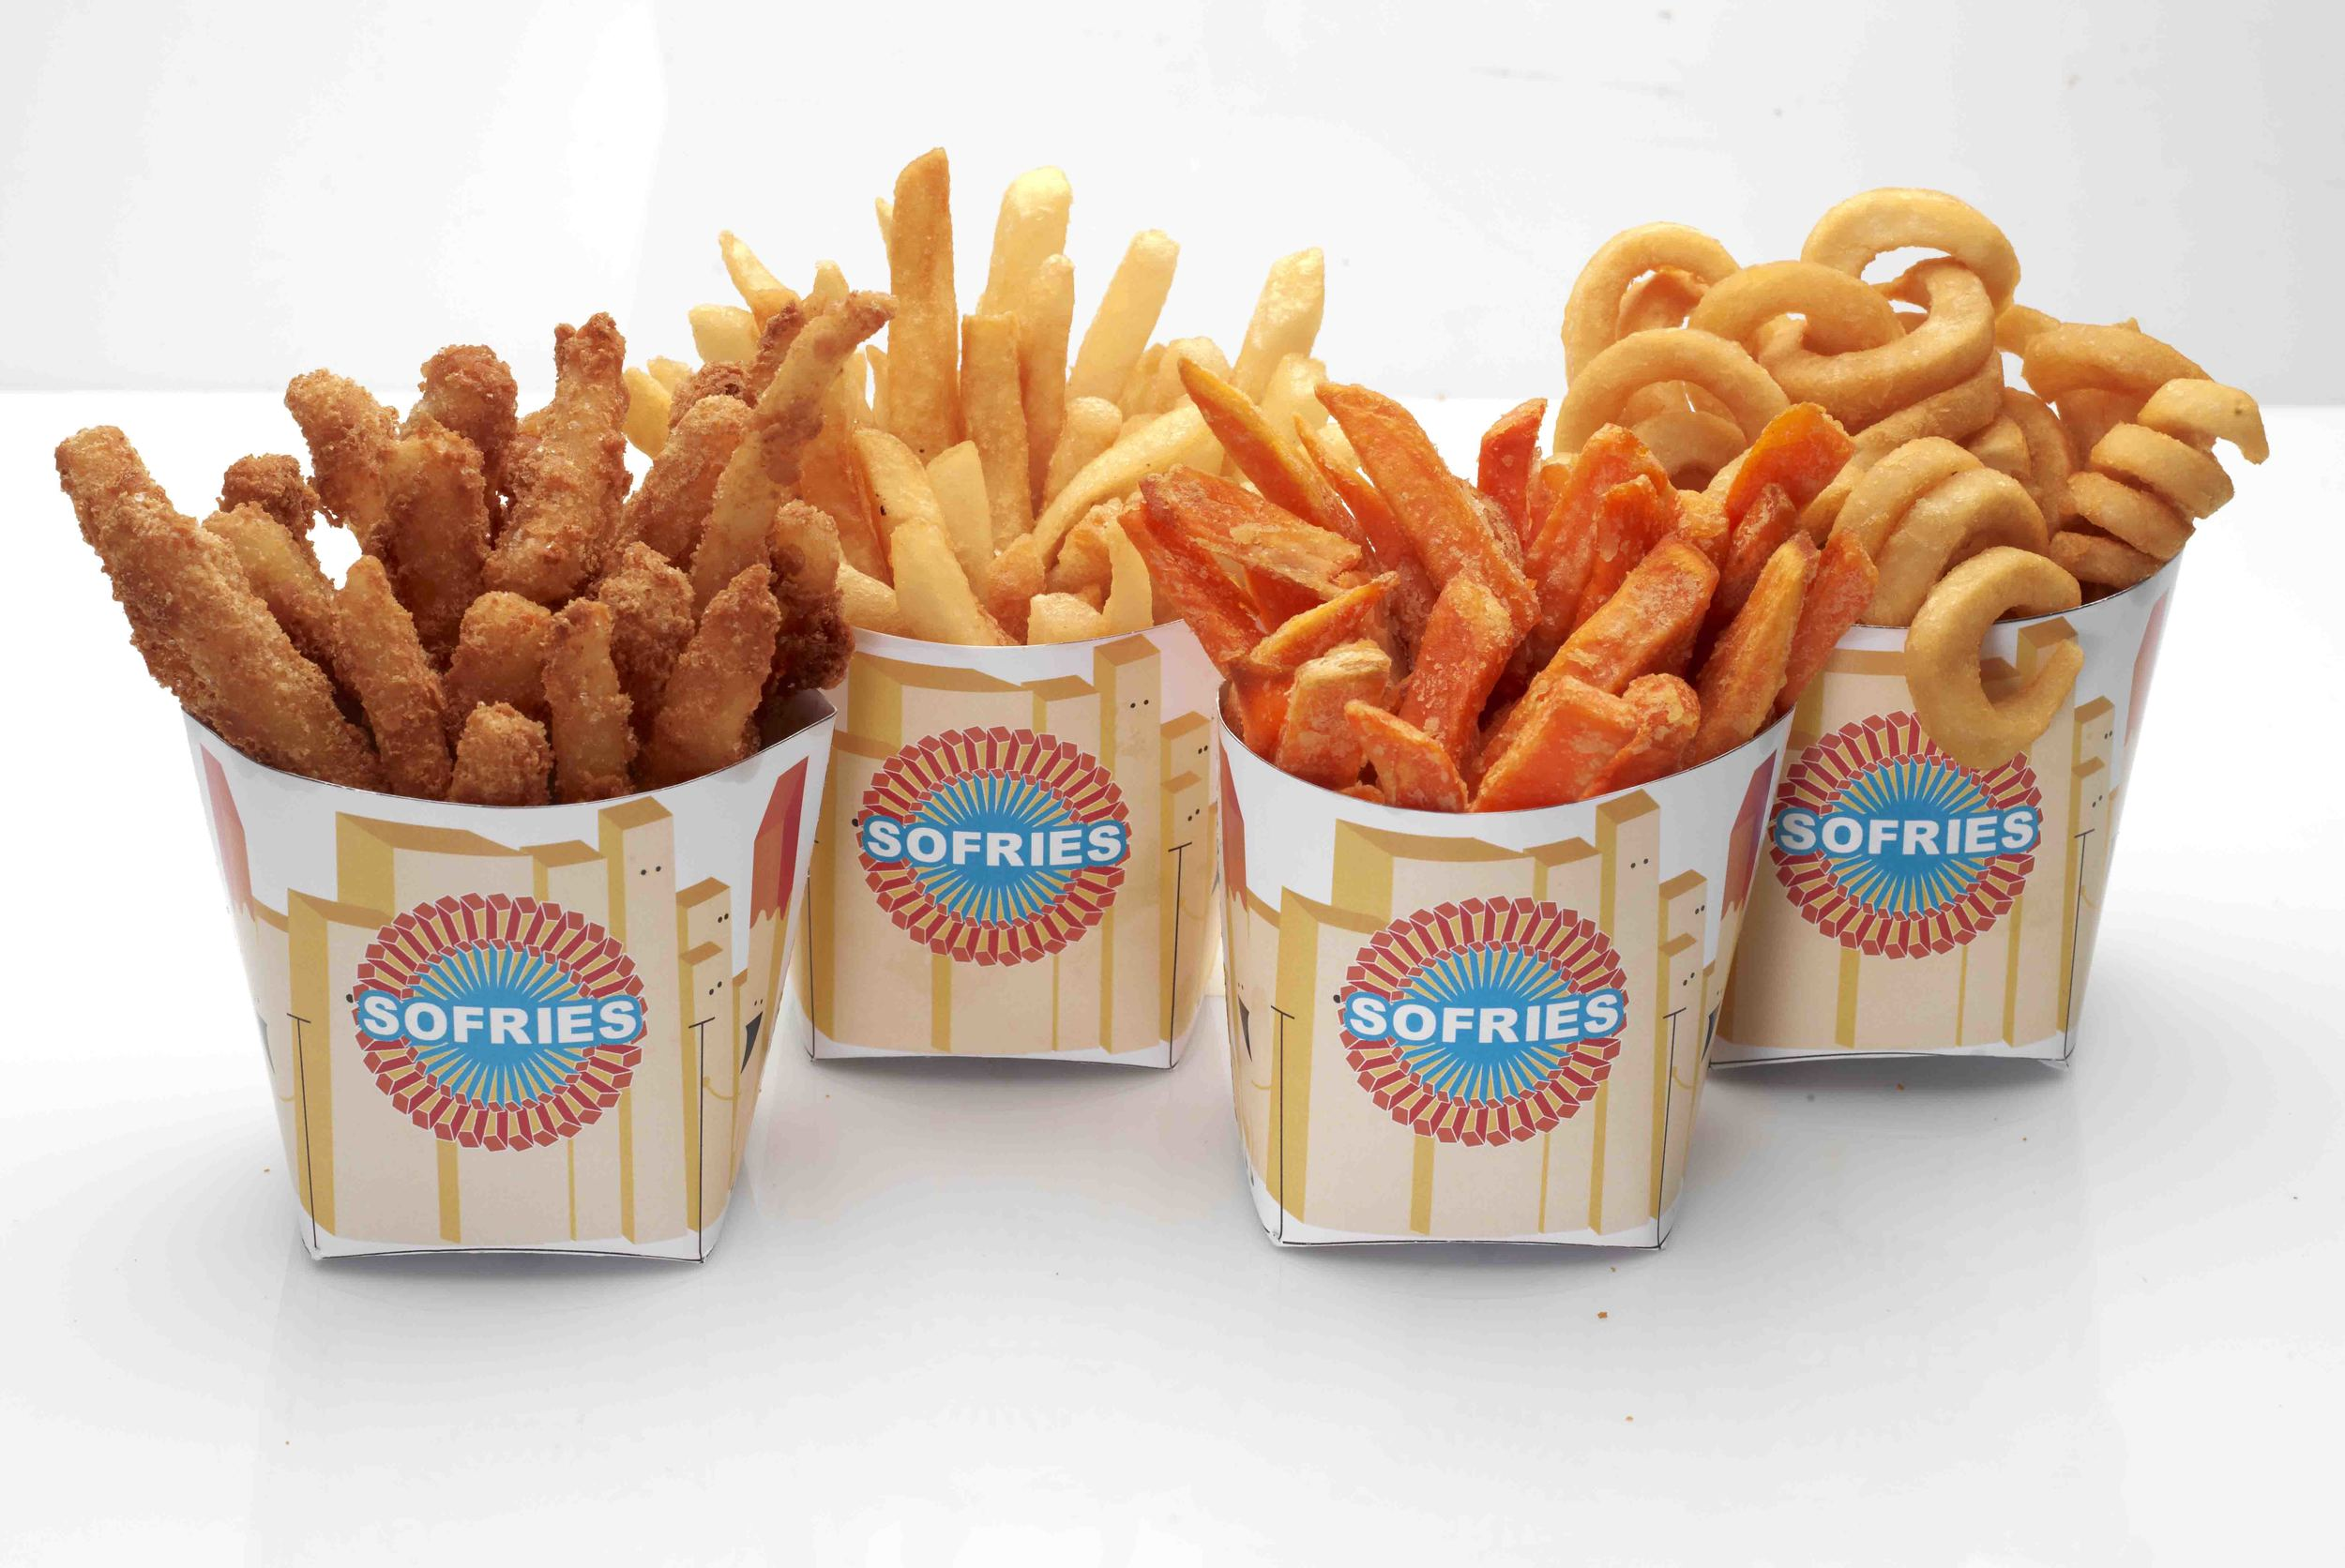 Sofries selection - cereal, regular, sweet potato and curly